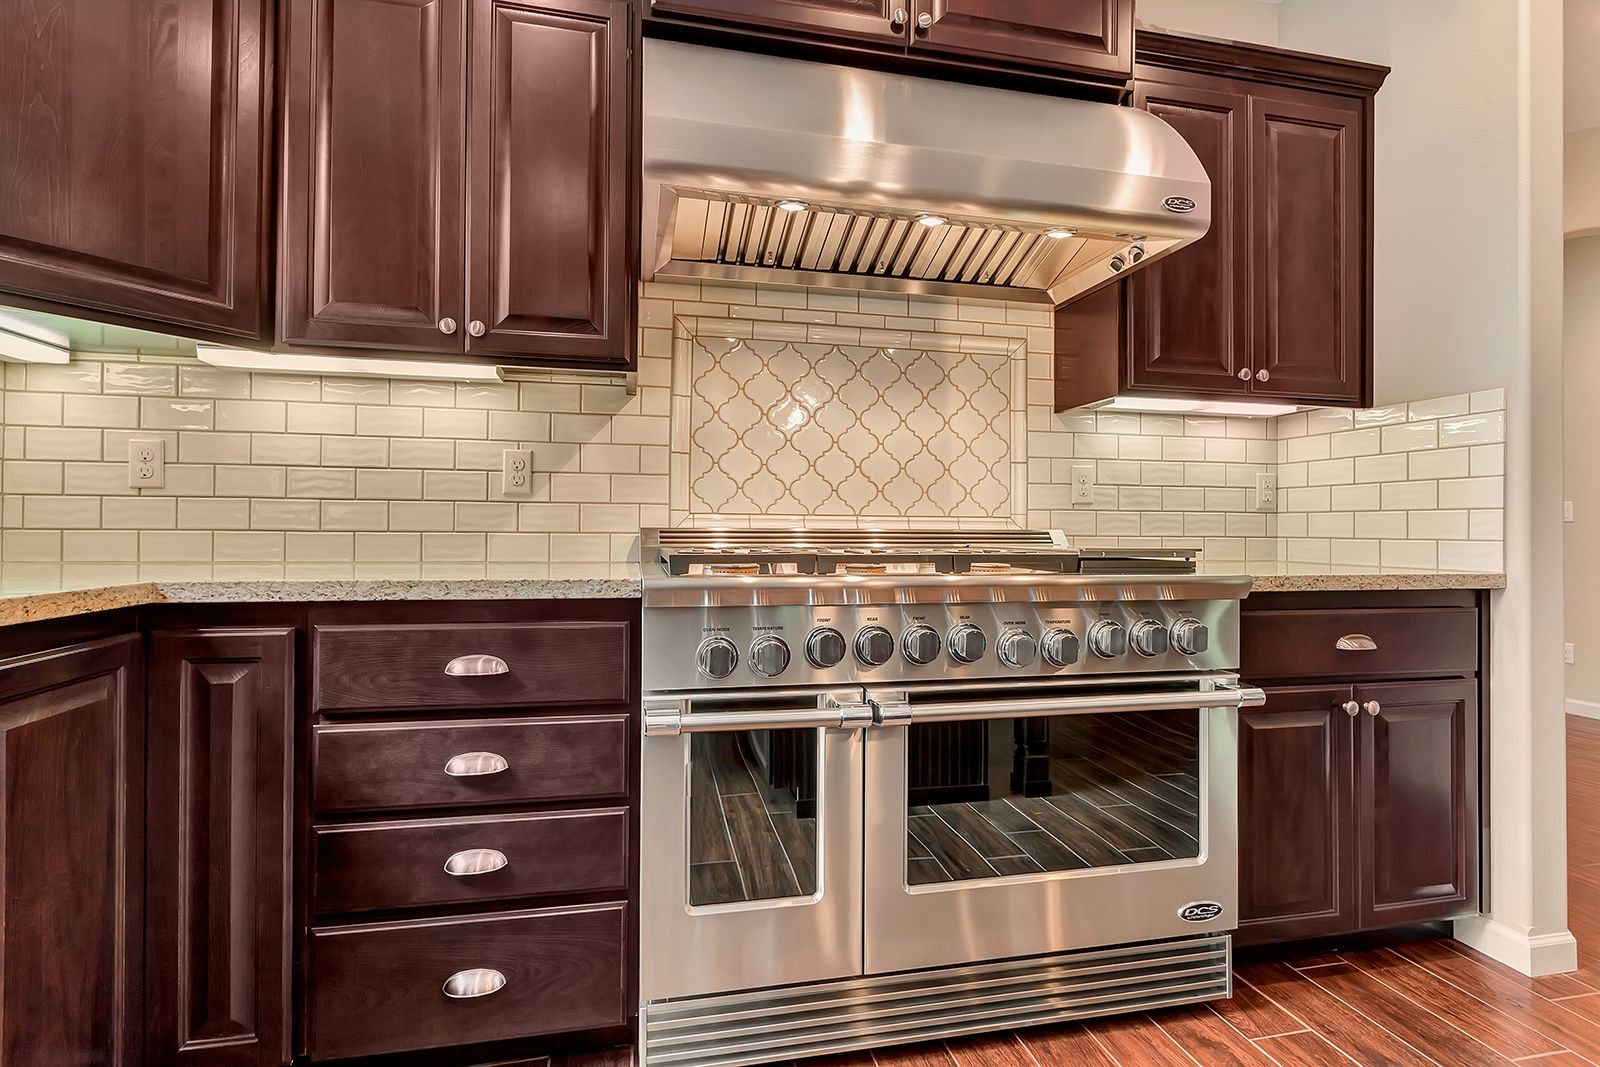 Matching Backsplash To Countertop Subway Tile Backsplash With A Matching Arabesque Accent